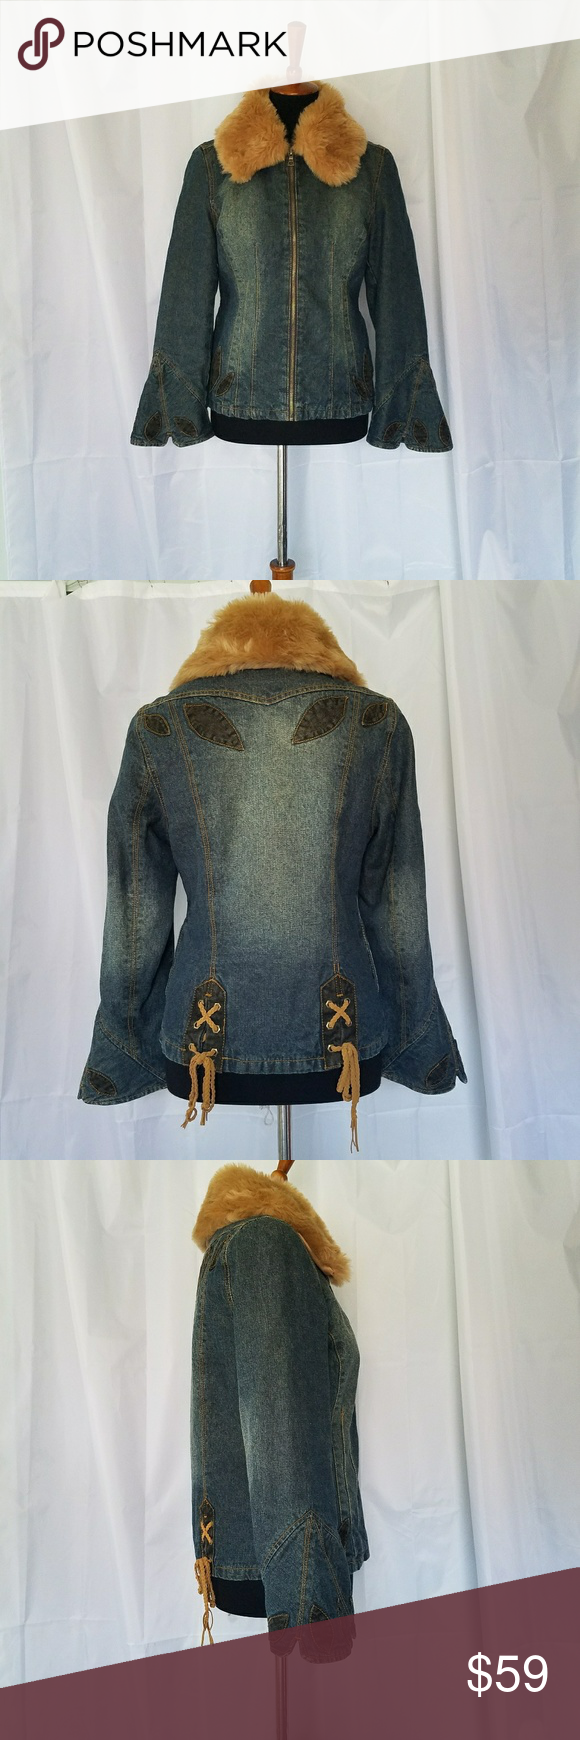 Embellished jean jacket w faux fur collar faux fur collar fur